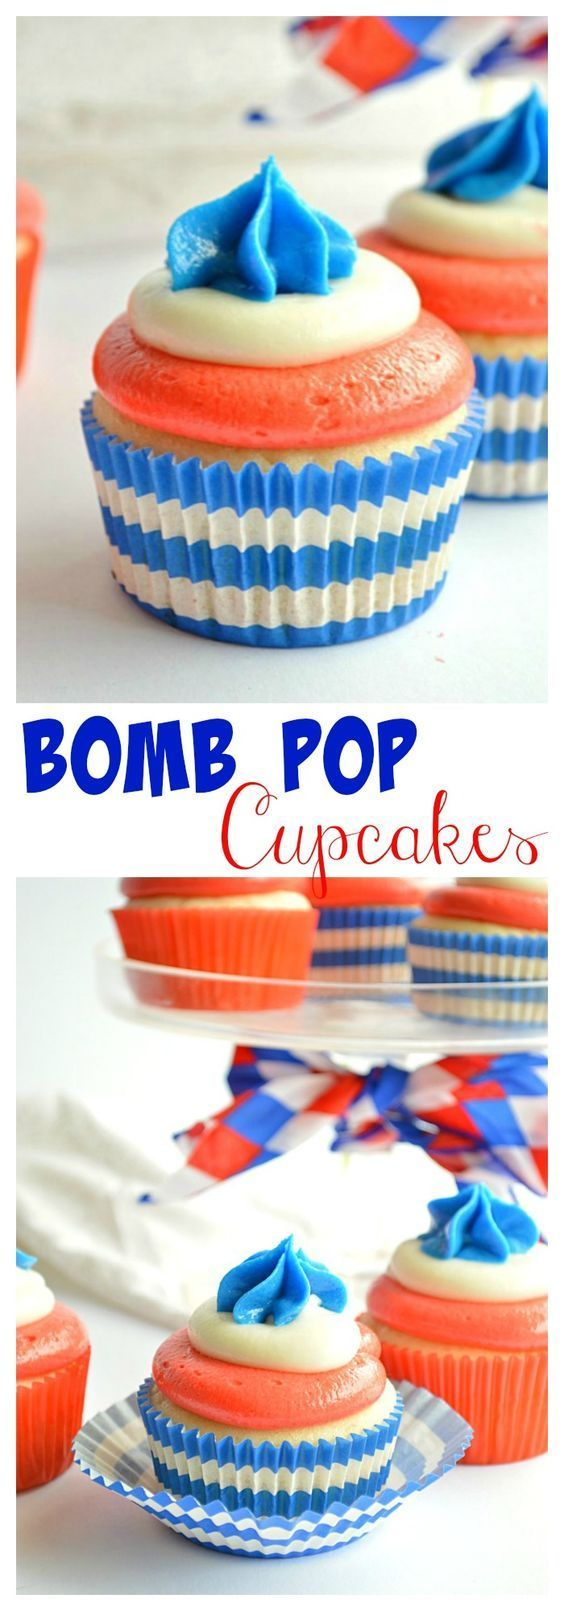 Bomb Pop Cupcakes - made with all the flavors of the classic popsicle! Blue Raspberry, White Lemon, and Cherry! A fun dessert for Memorial Day, 4th of July, or Labor Day!   http://houseofyumm.com for http://cupcakesandkalechips.com